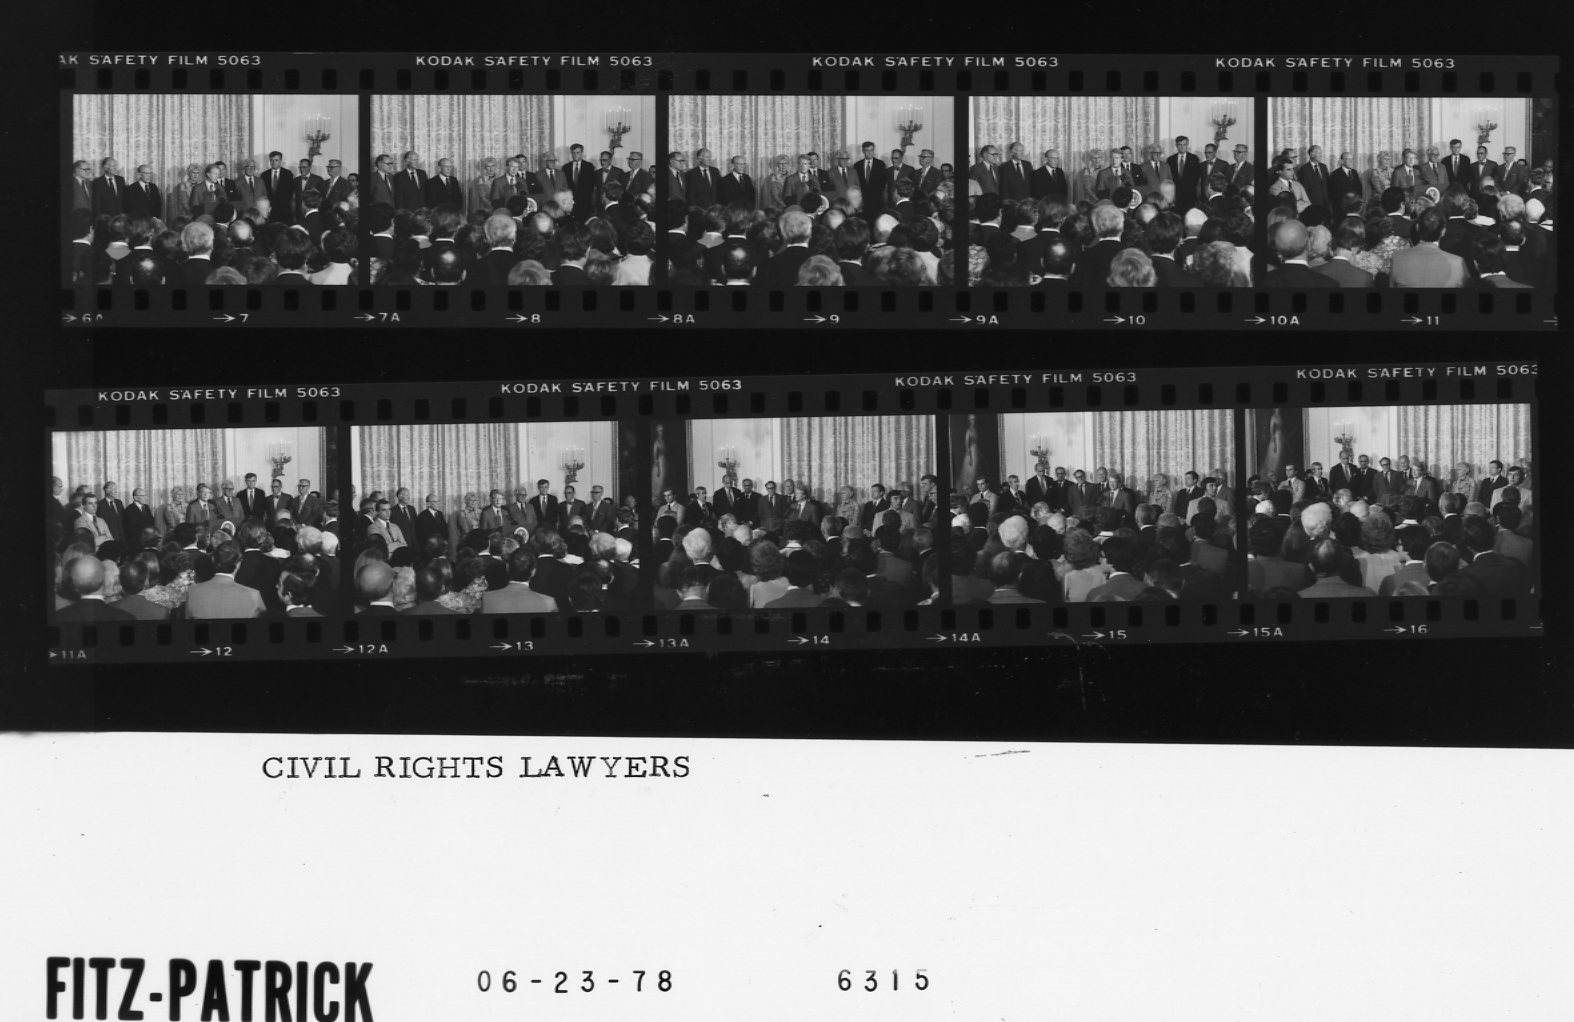 Civil Rights Lawyers